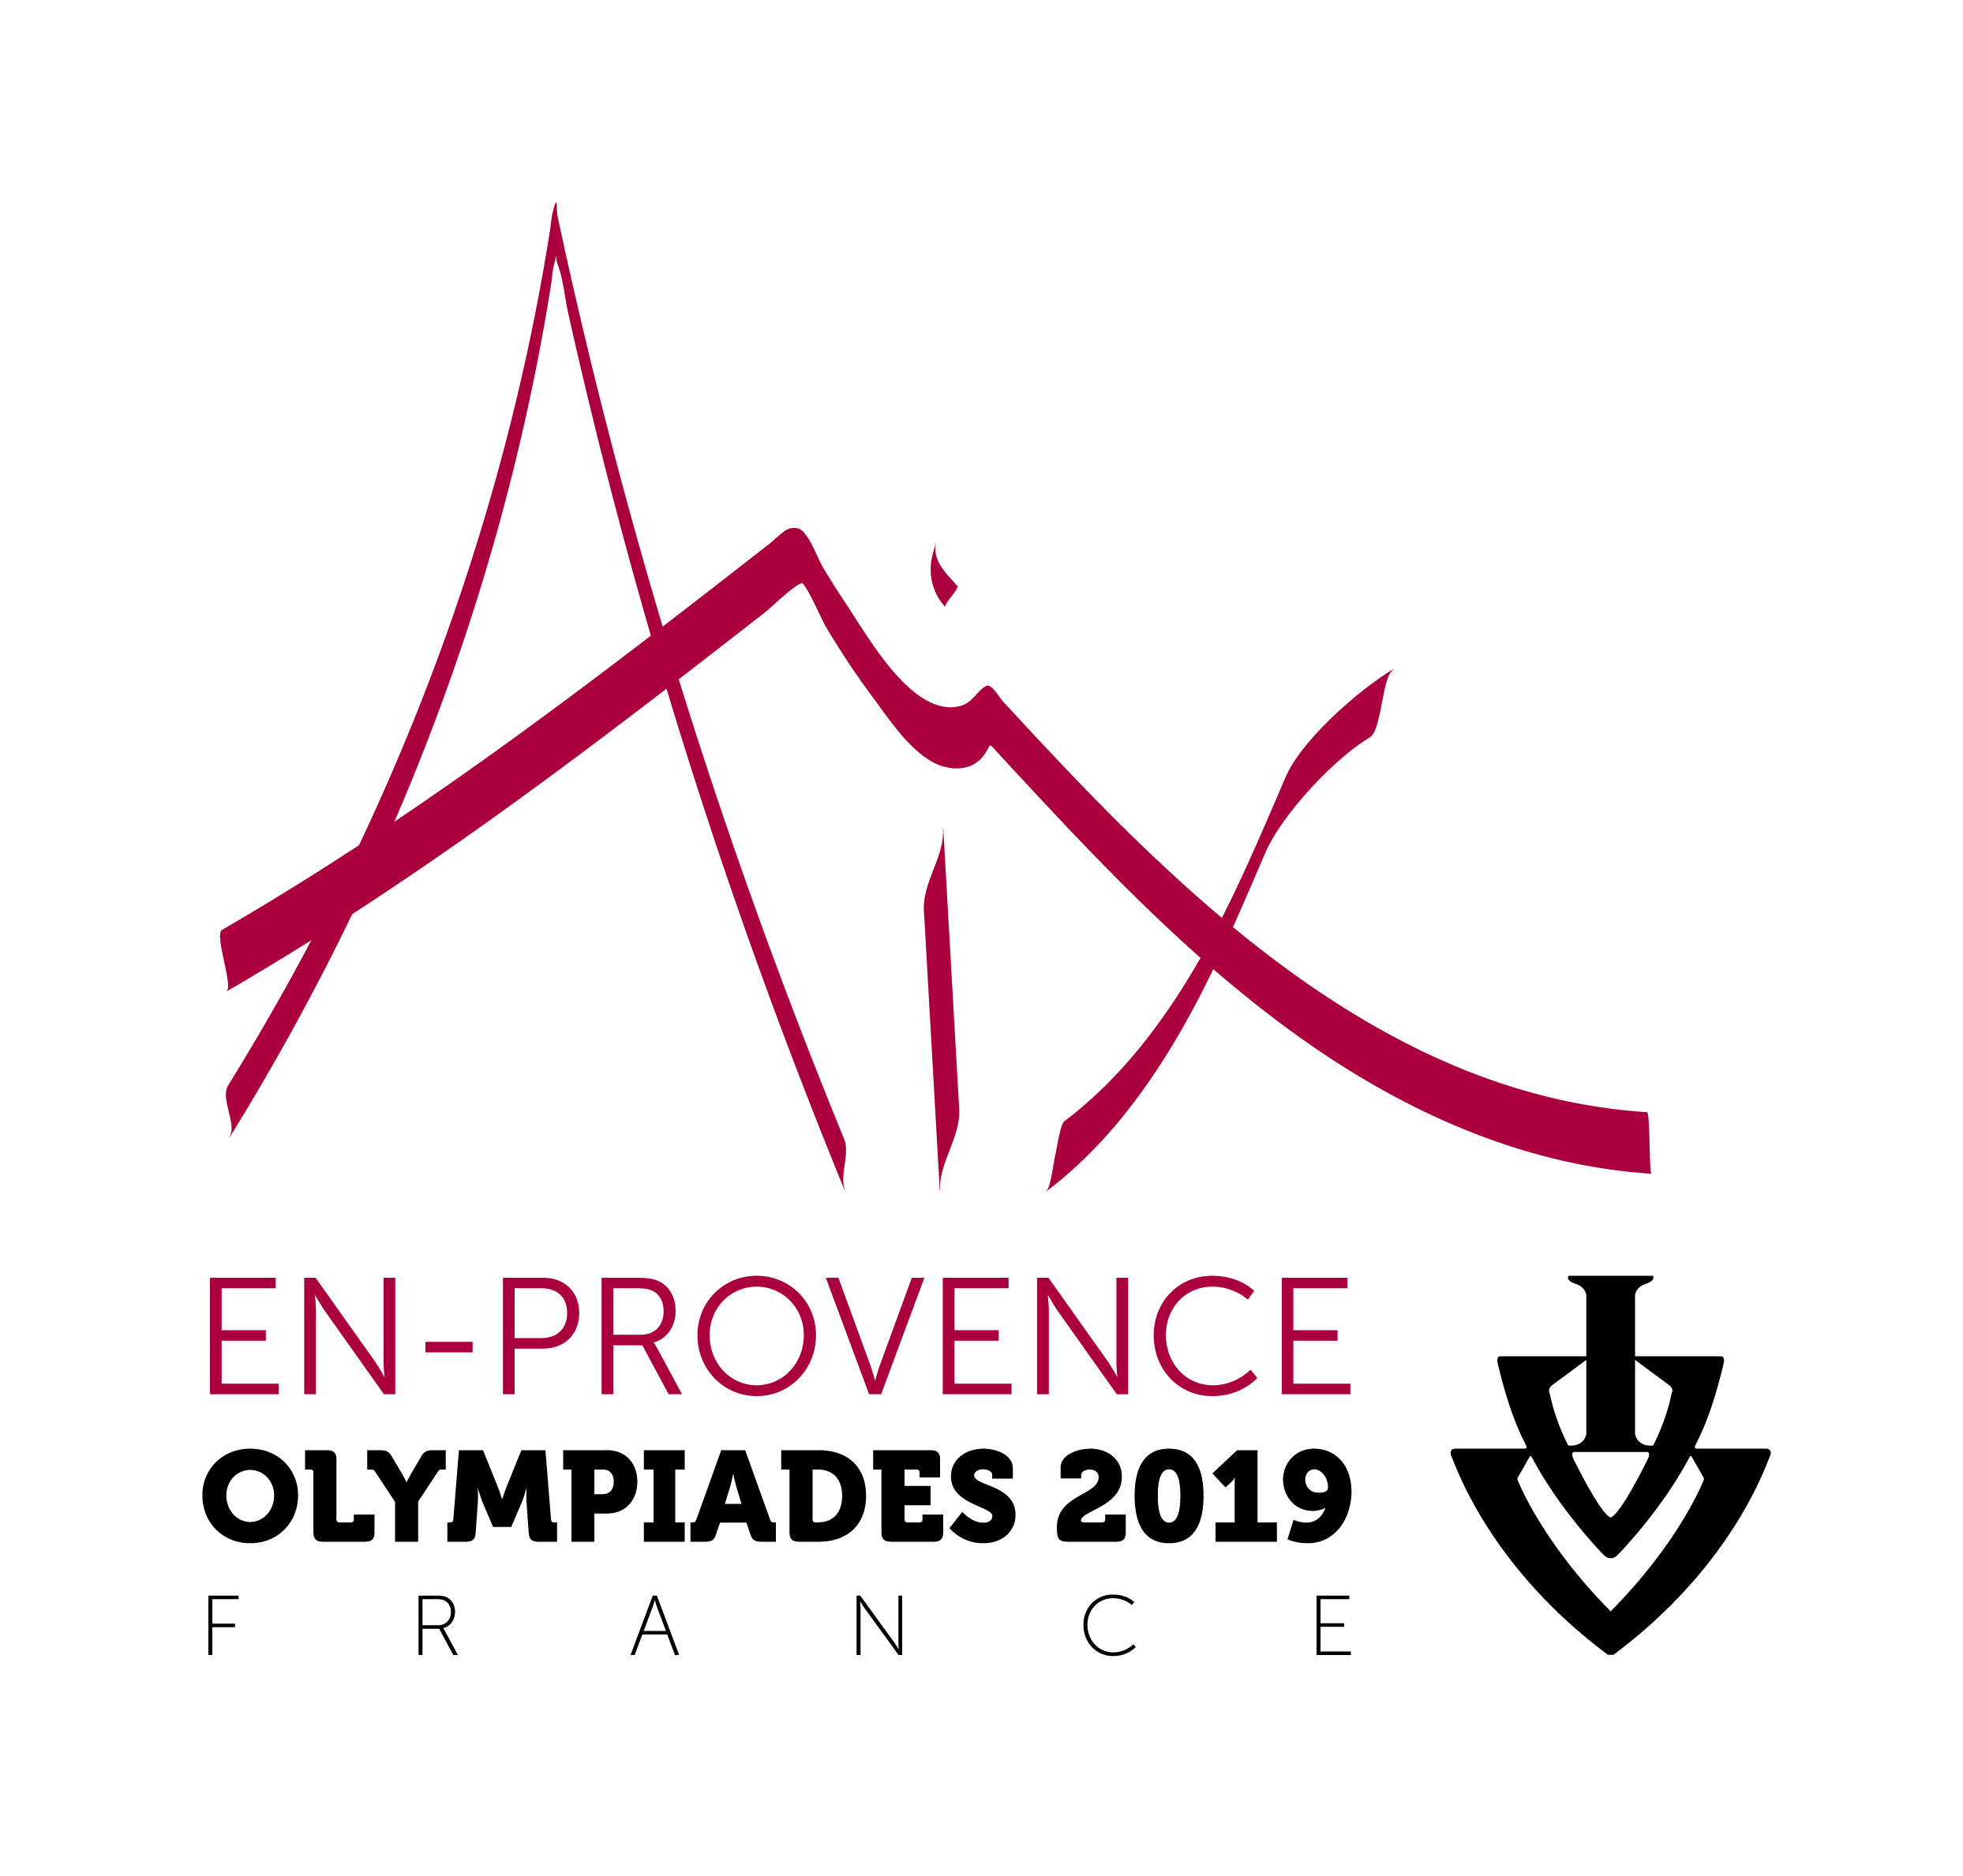 olympiades ivv sports populaires aix en provence 2019